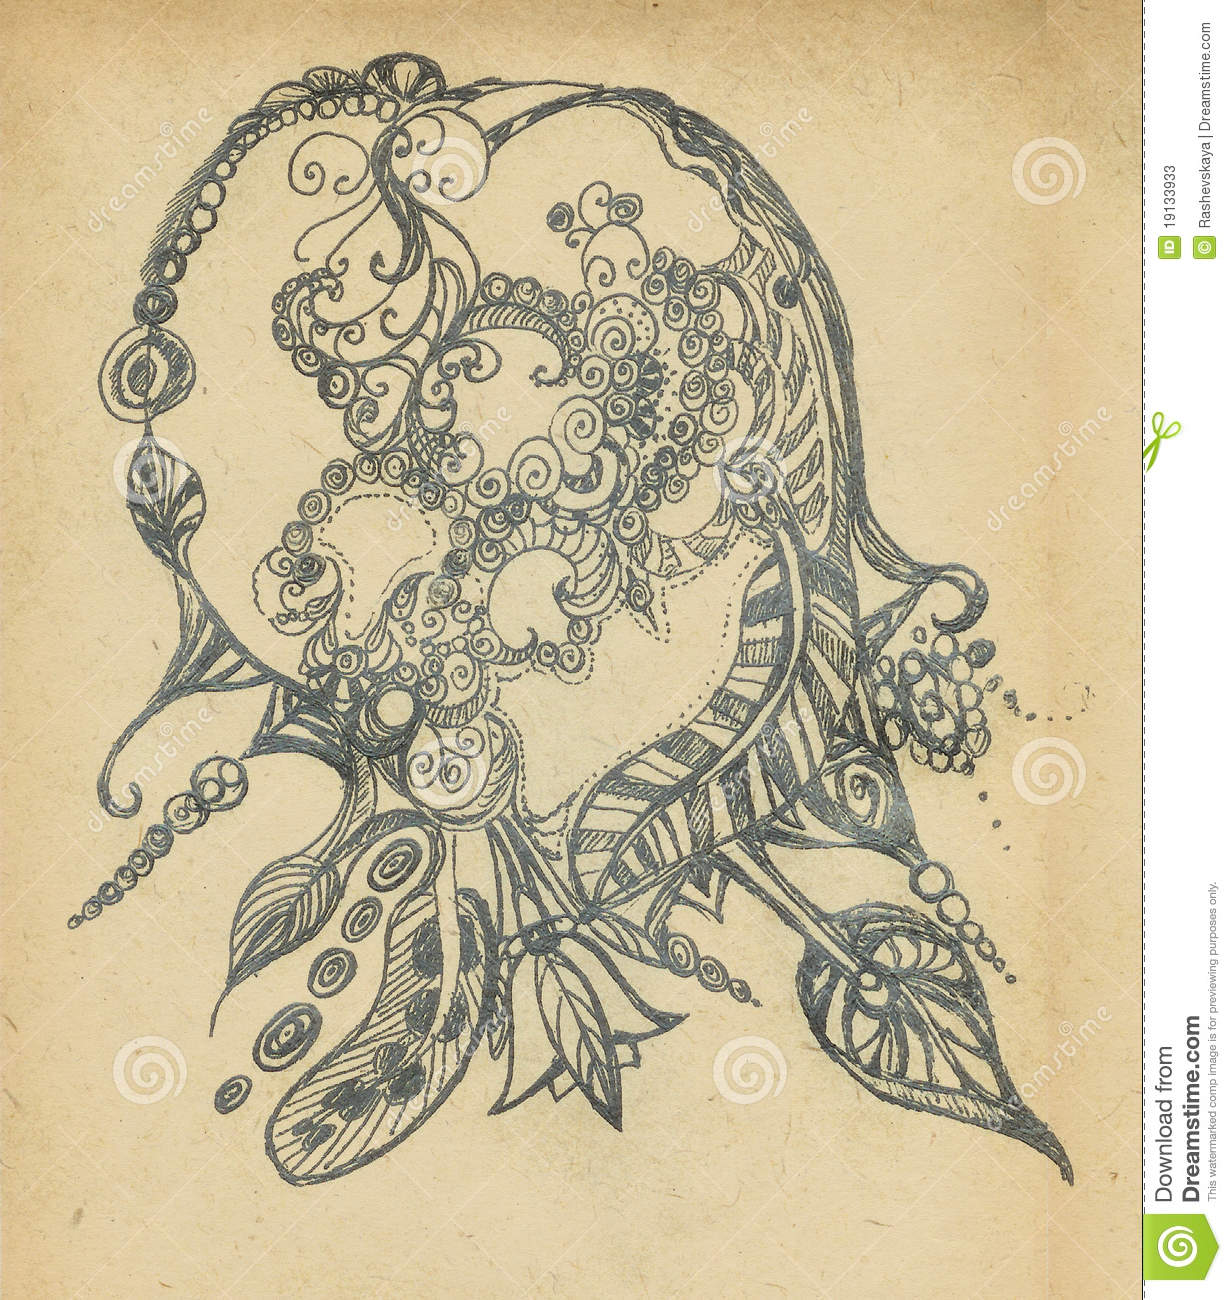 Background whis the drawn decorative pattern